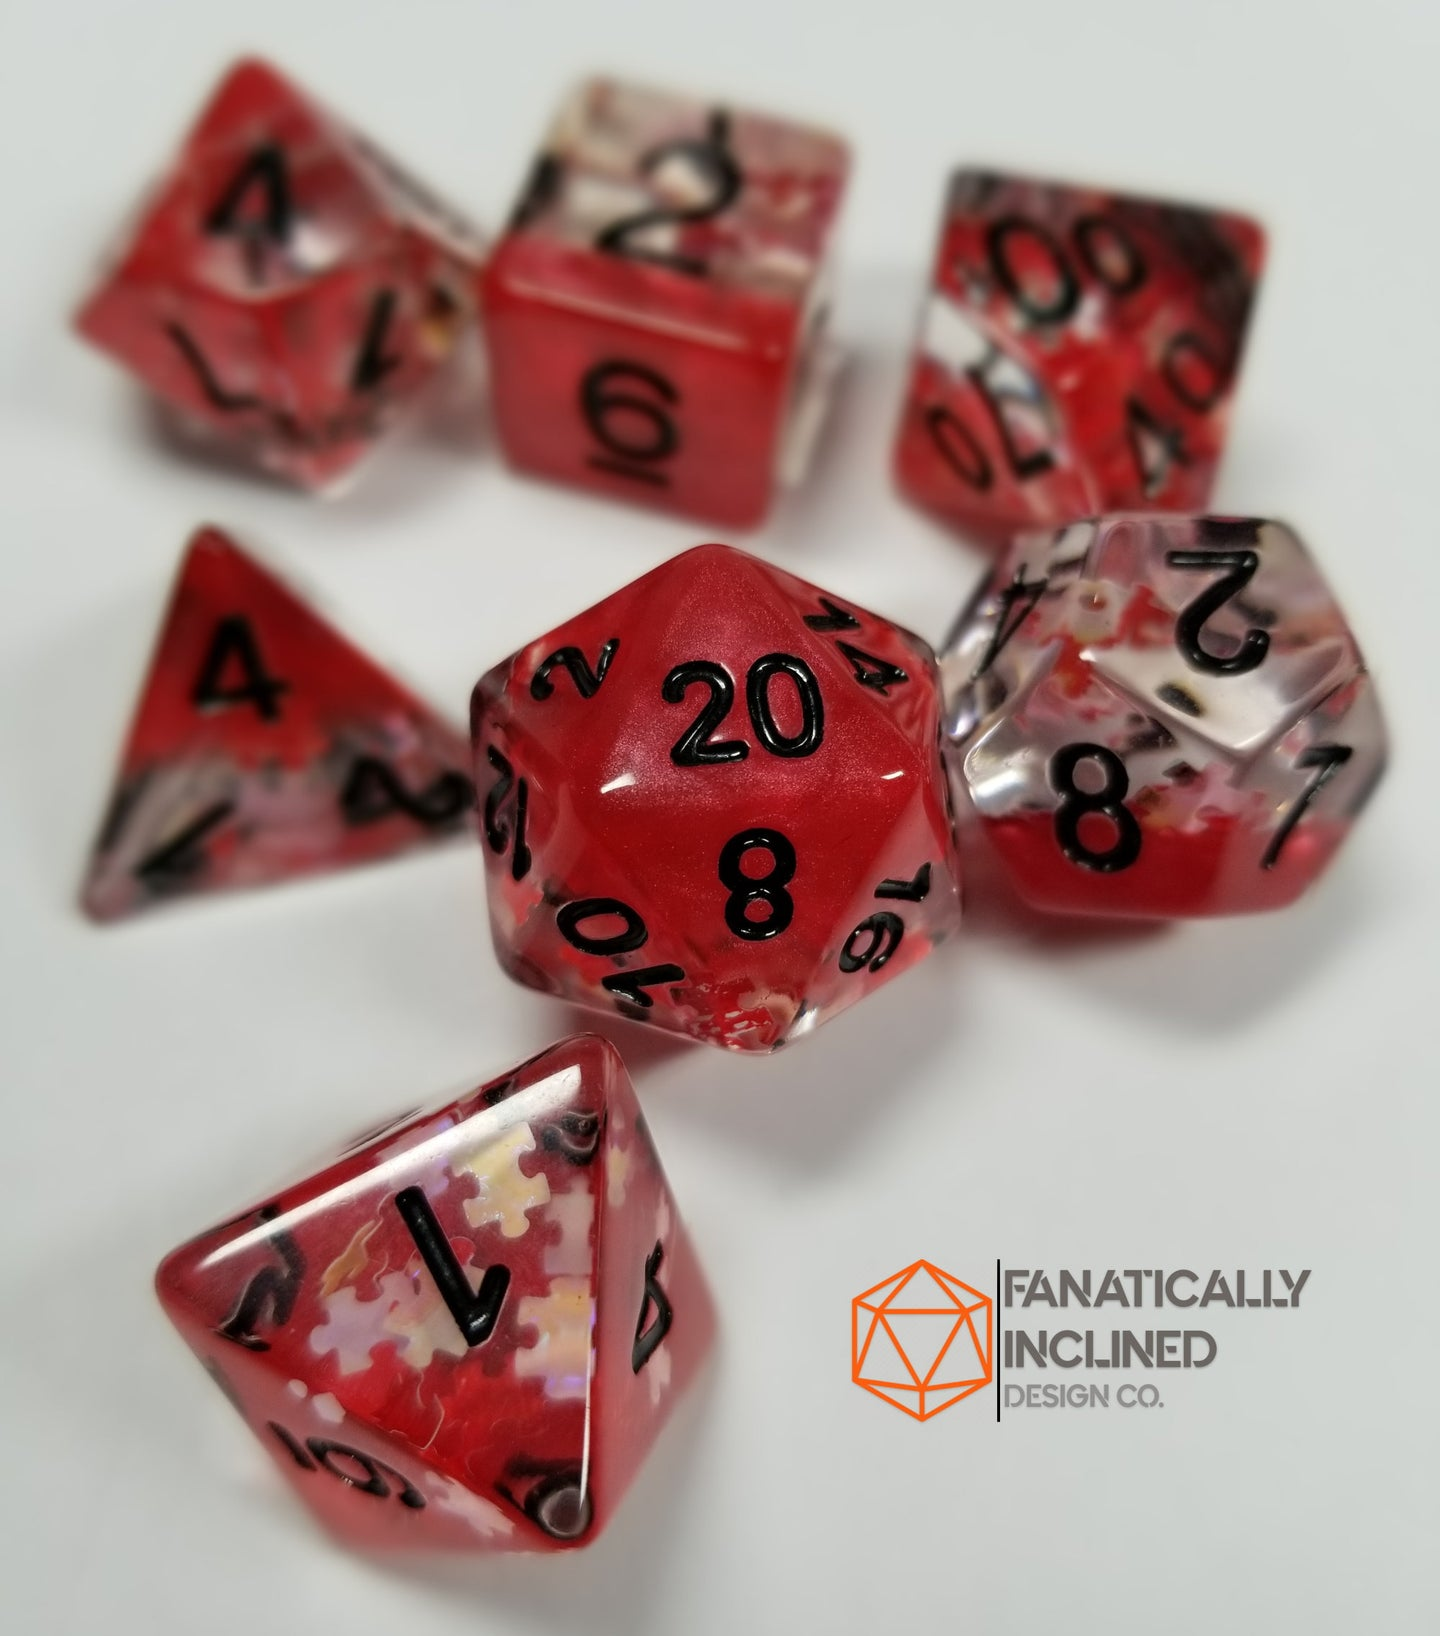 Red Dreamlike Puzzle Resin 7pc Dice Set